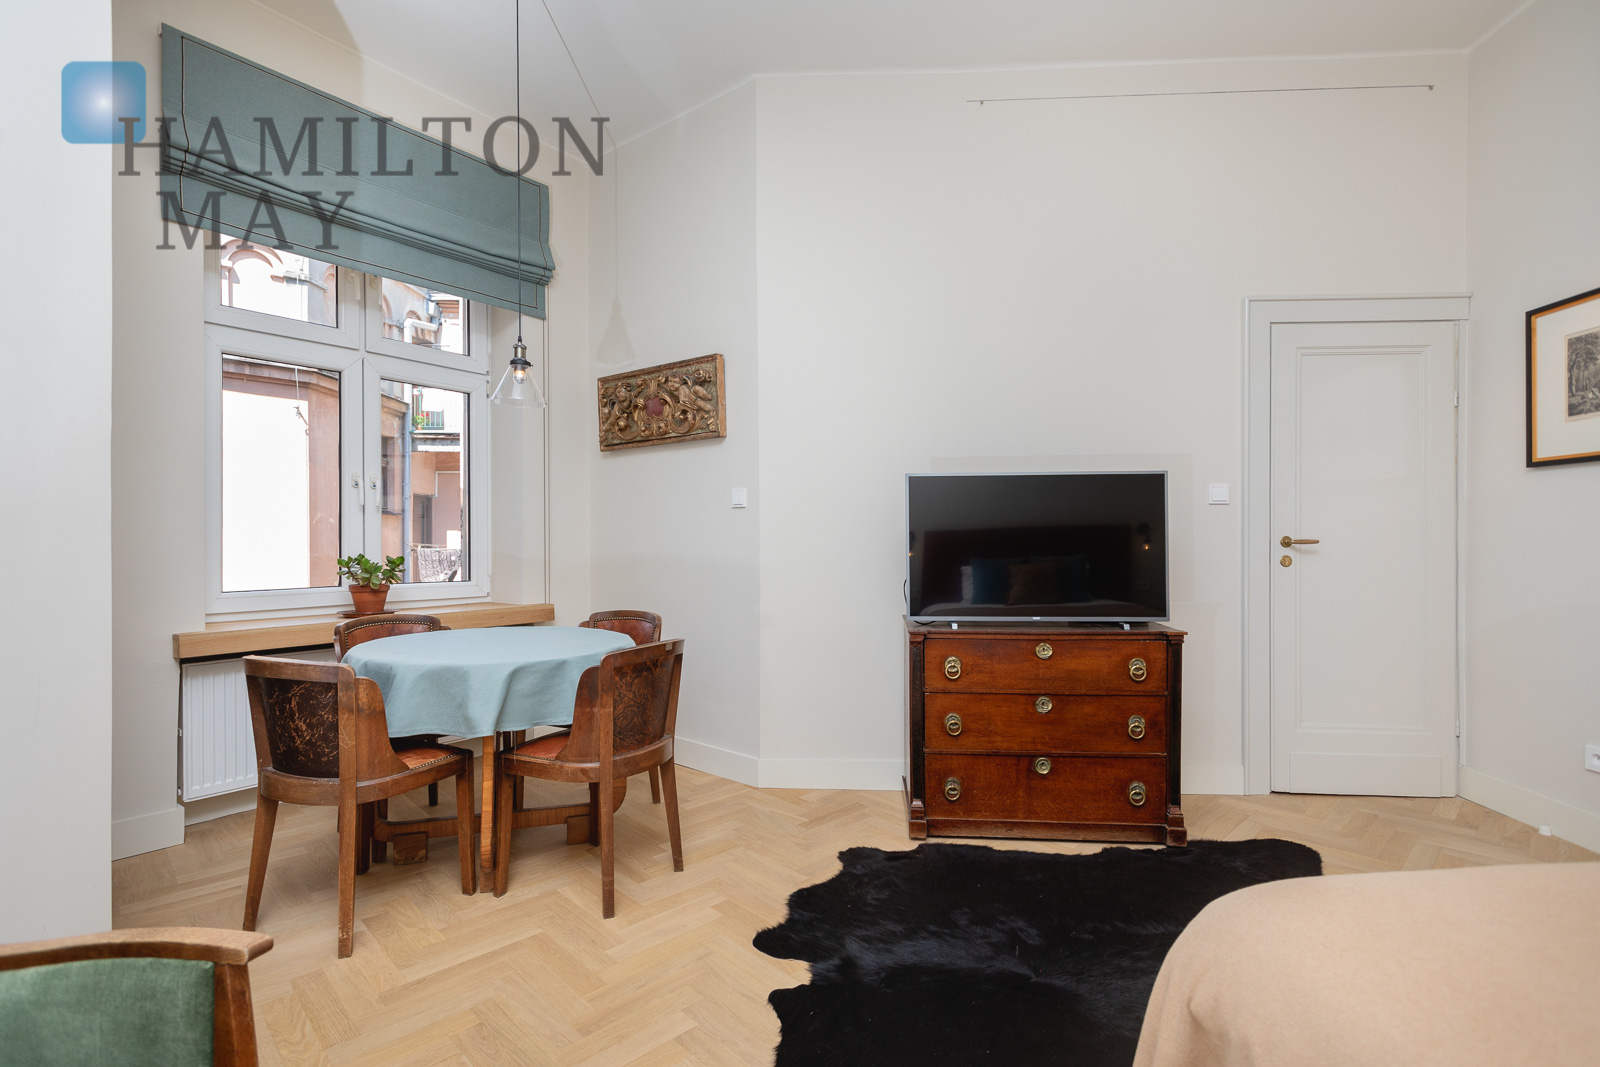 A beautiful, stylish apartment in a renovated tenement building in the Old Town Krakow for sale